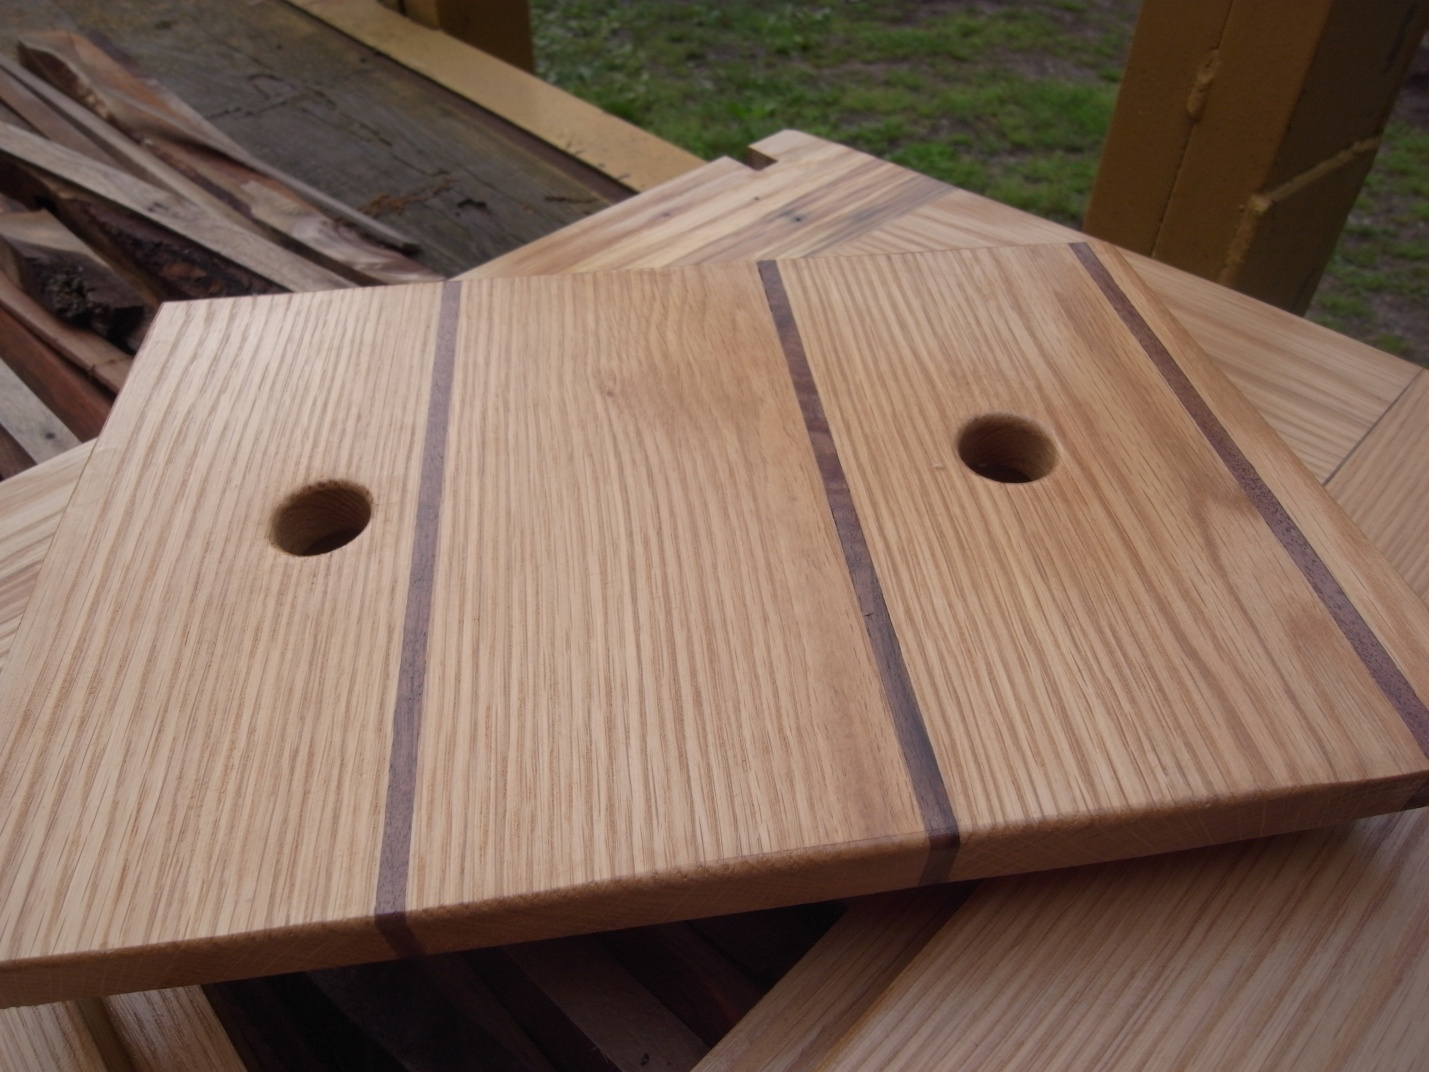 Click image for larger version  Name:walnut and oak.jpg Views:78 Size:410.4 KB ID:61409